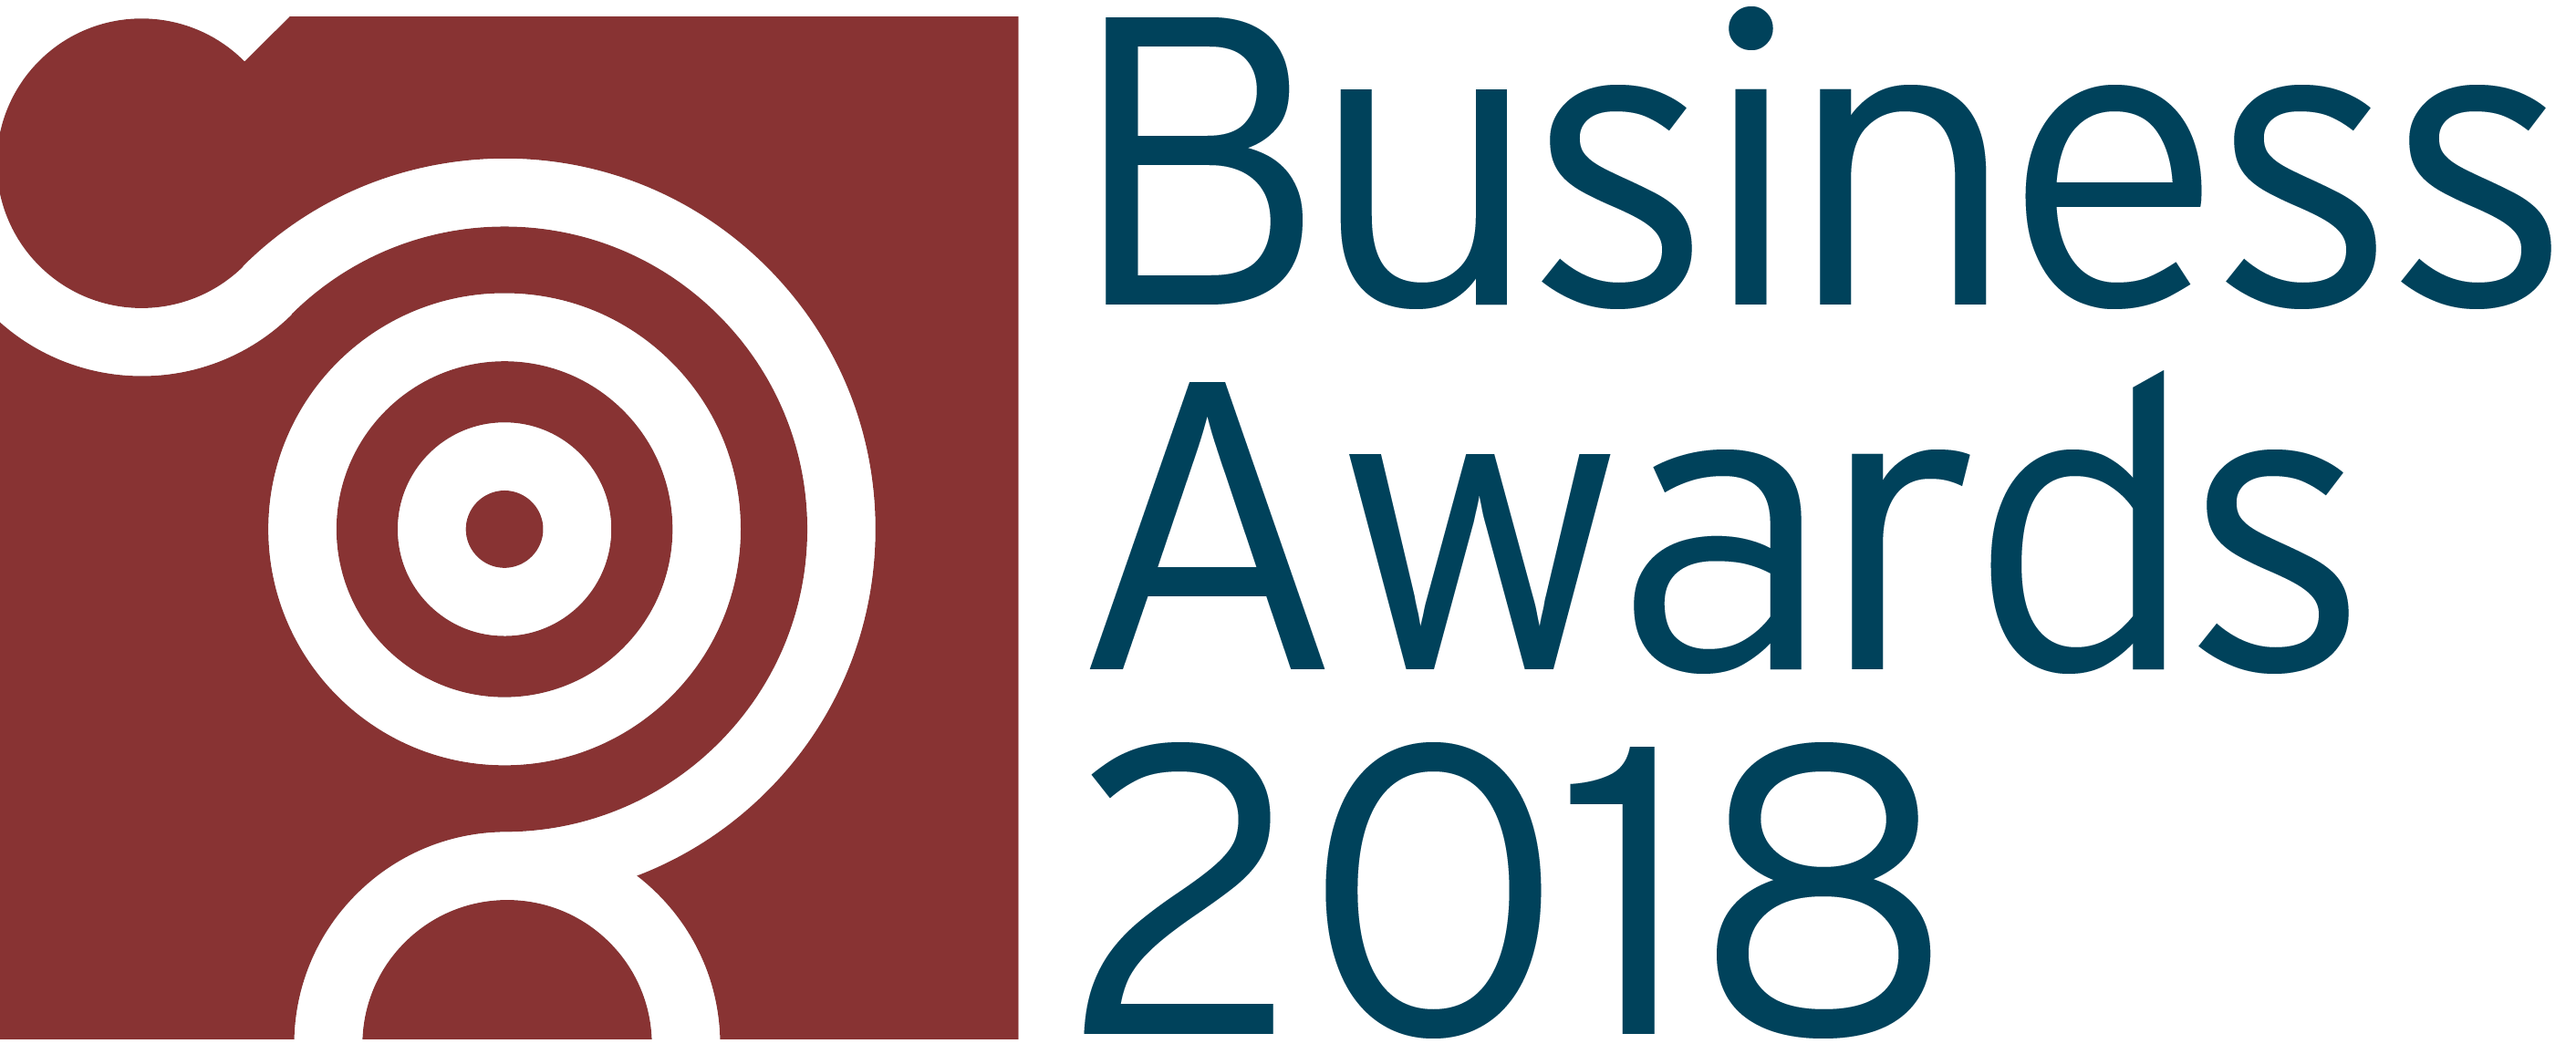 Business Awards 2018 Logo NO BOARDER